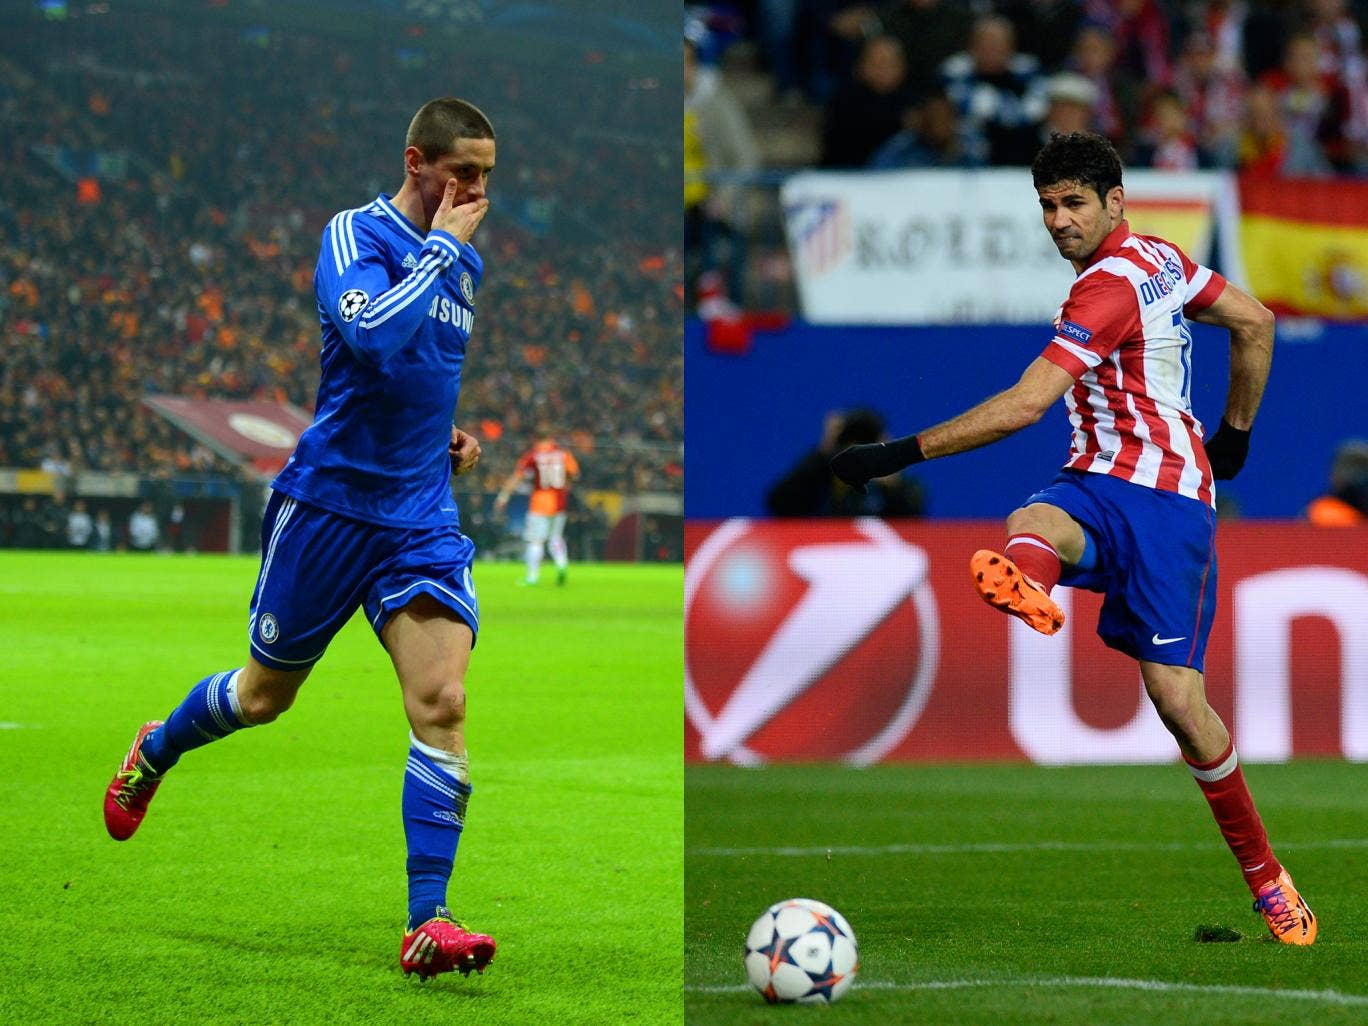 Fernando Torres has refused to rule out a return to Atletico Madrid, which could pave the way for a move to Chelsea for Diego Costa